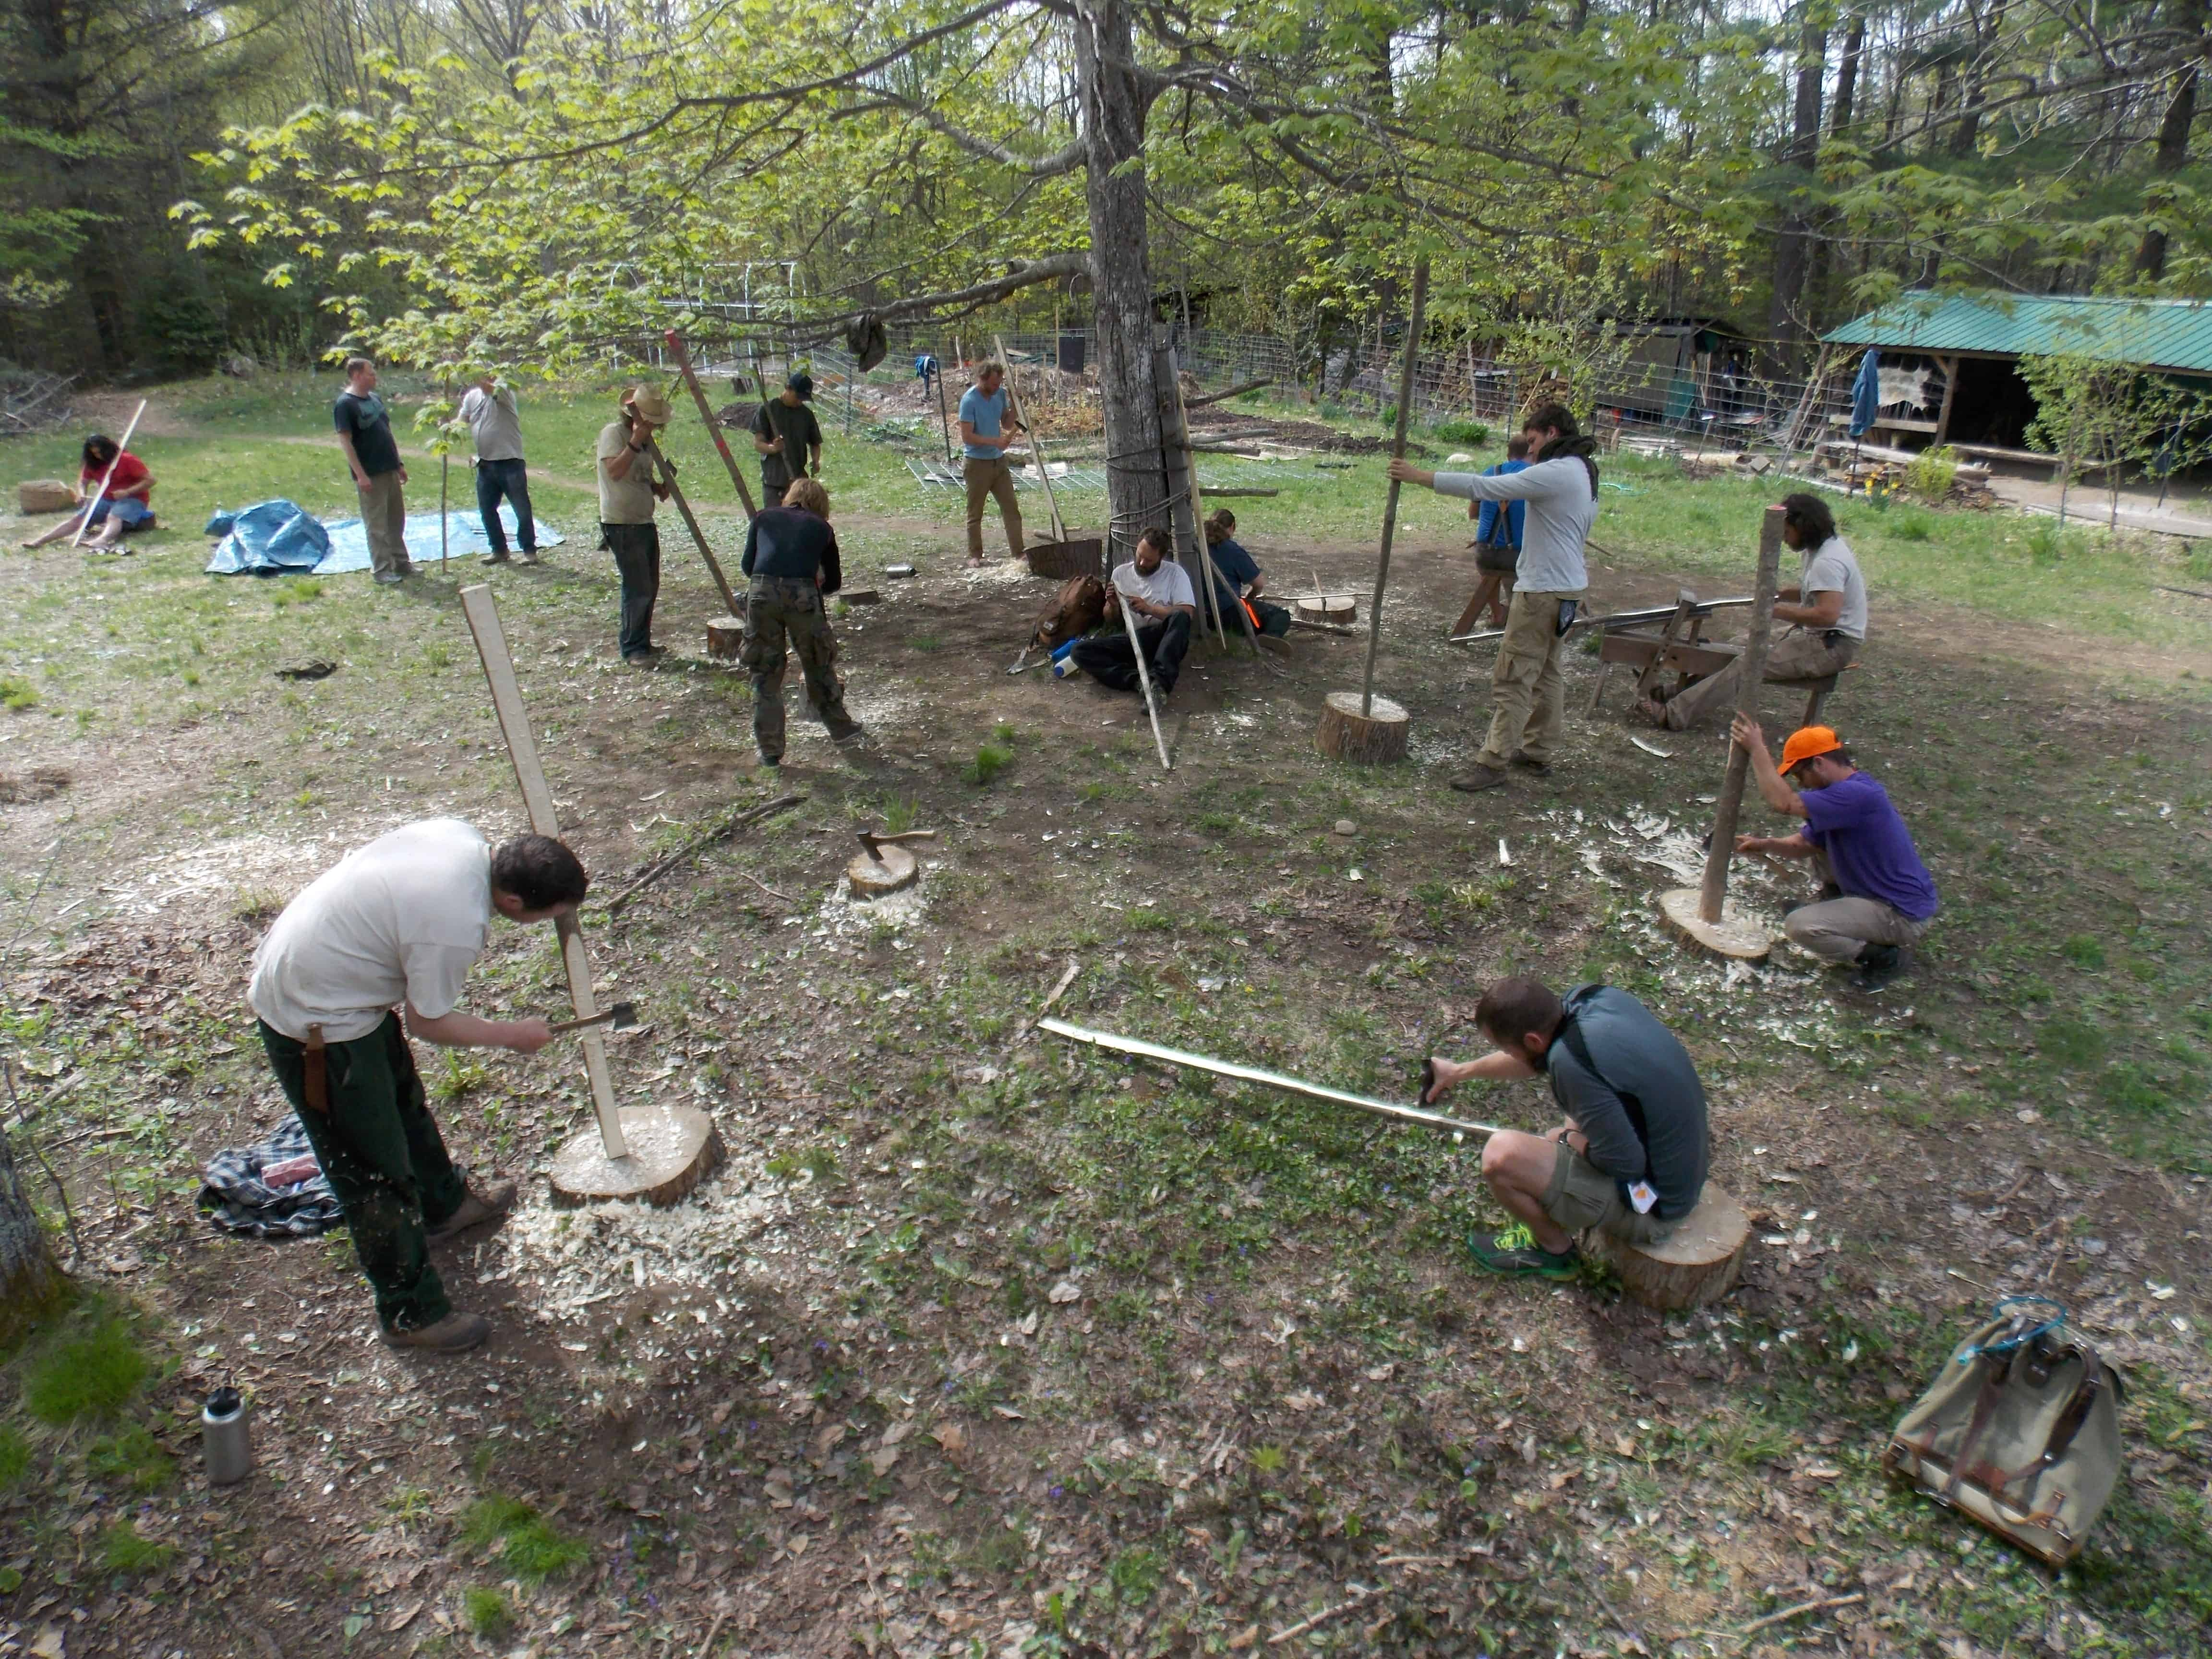 apprenticeship in primitive skills and outdoor education maine these three phase professional programs are an immersion in skills development application of educational strategies and community building put